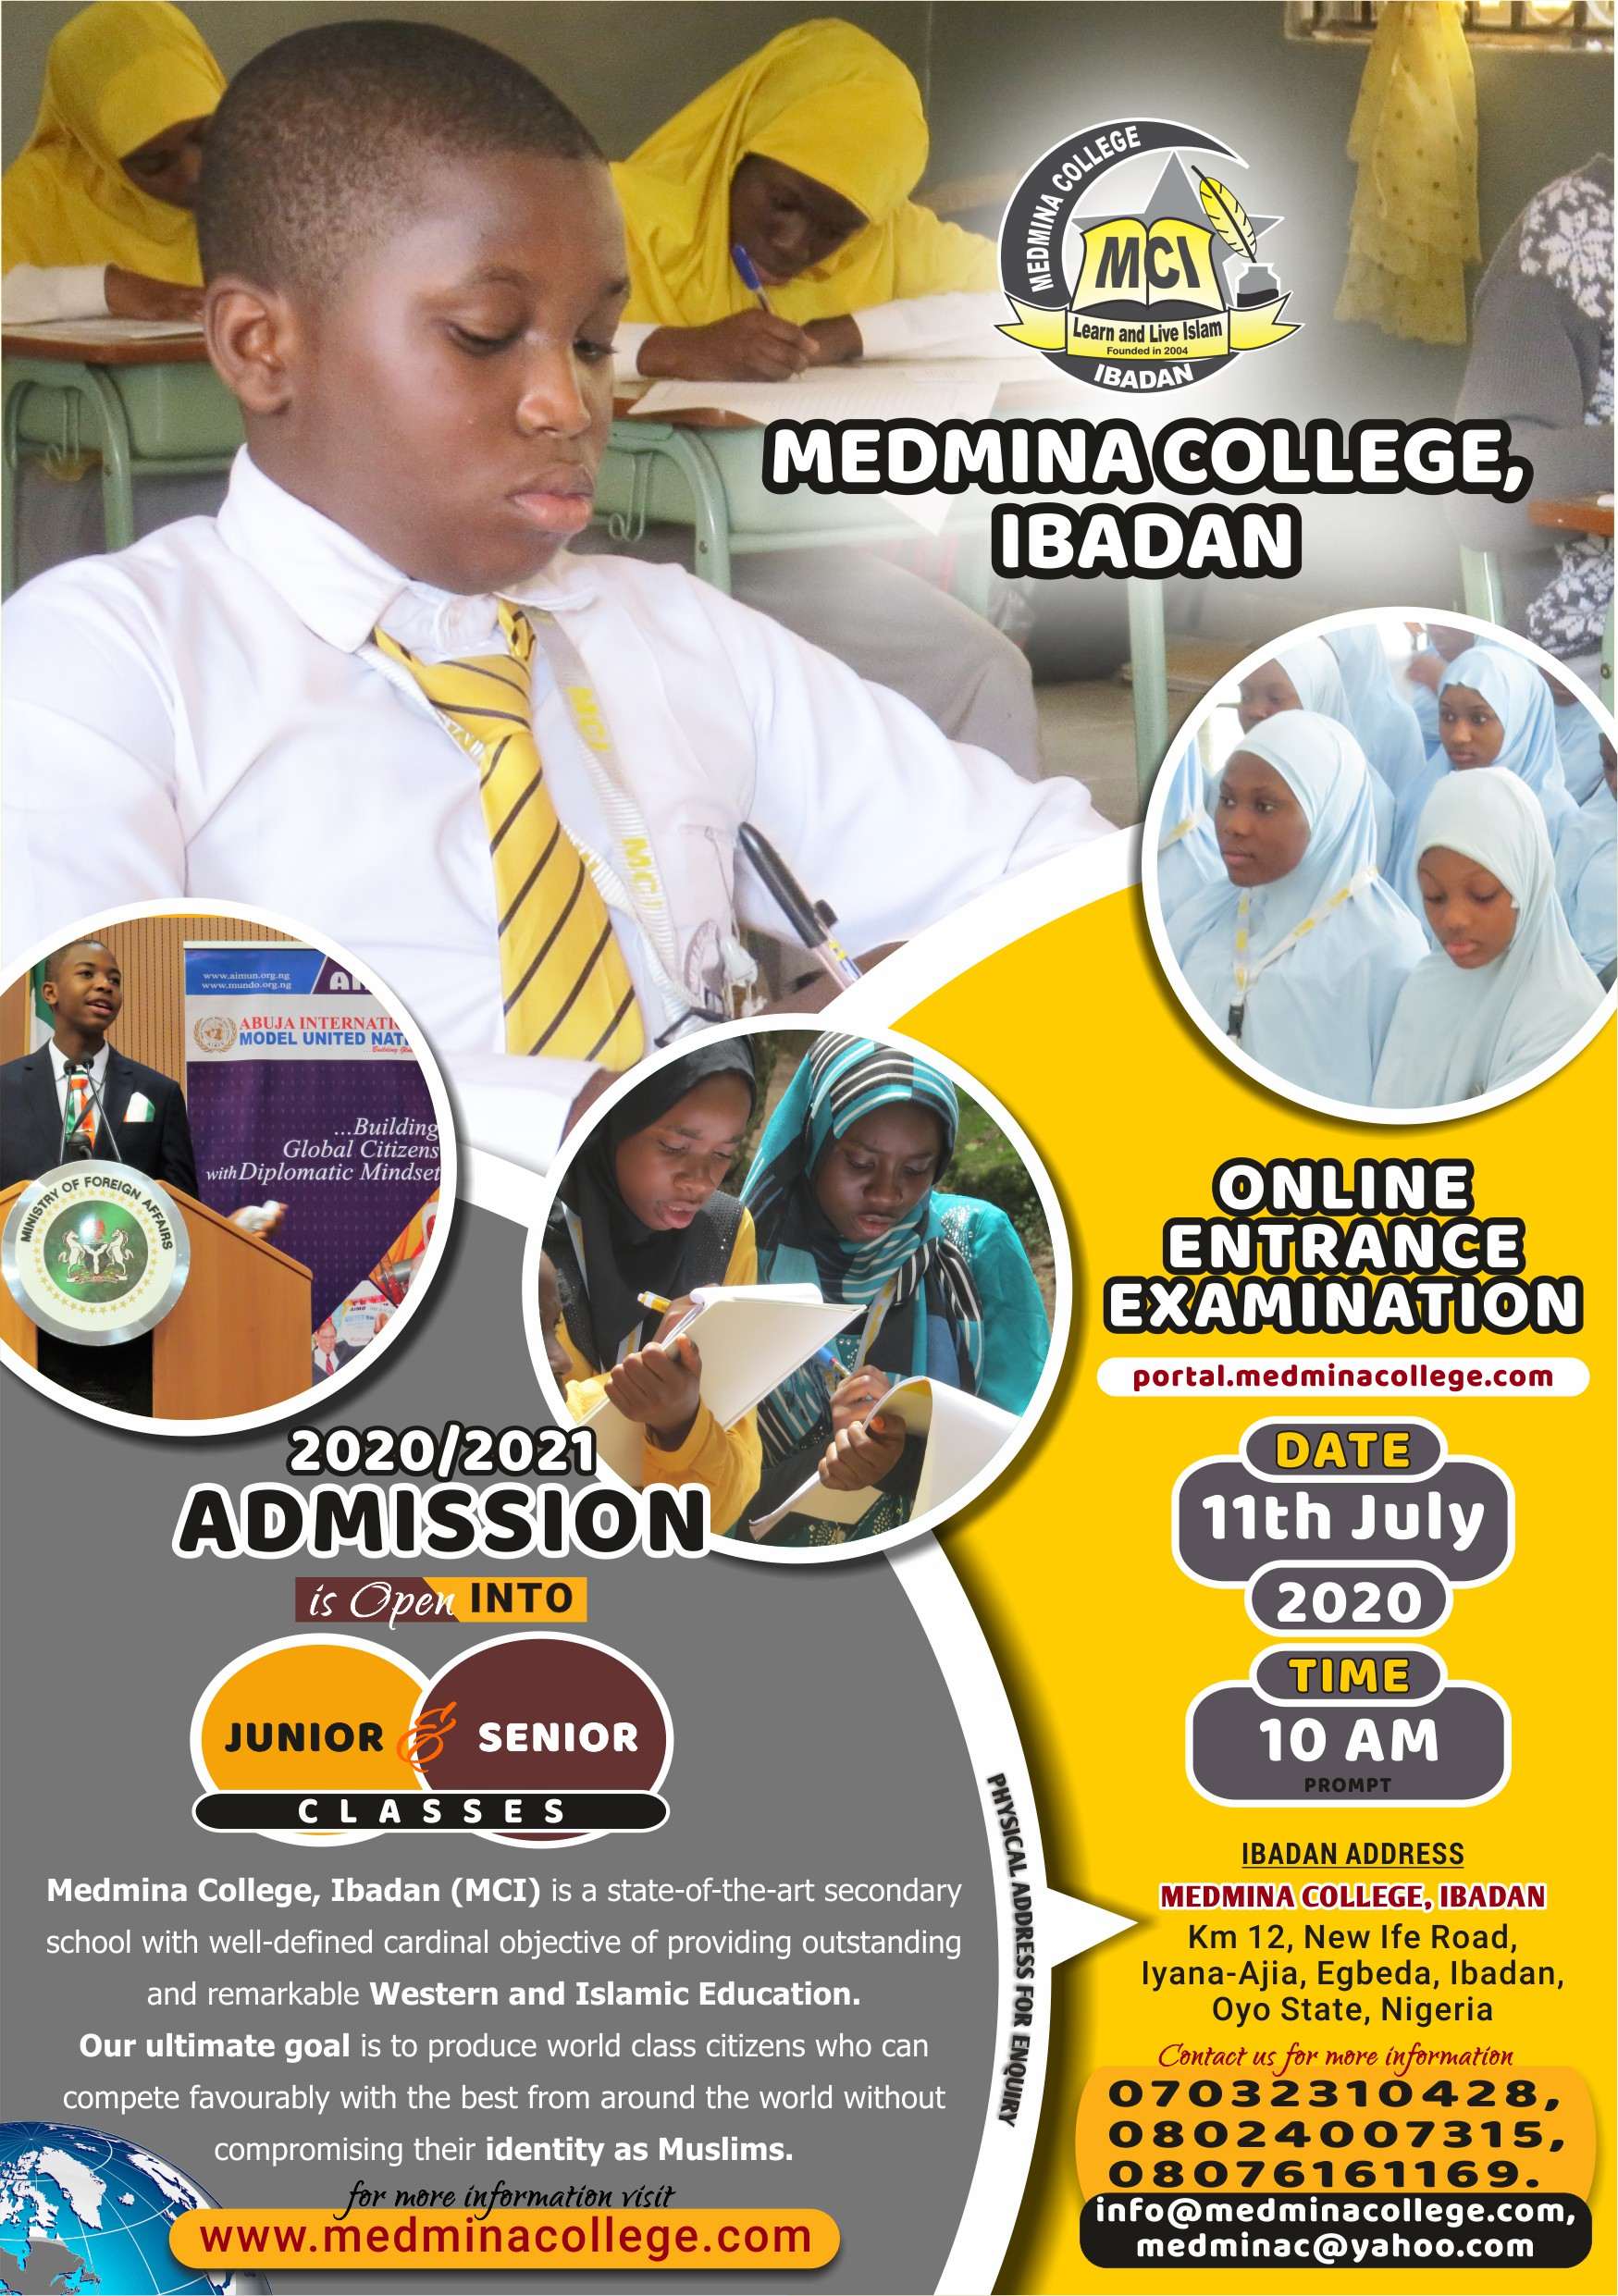 2020/2021 Online Entrance Examination for Admission